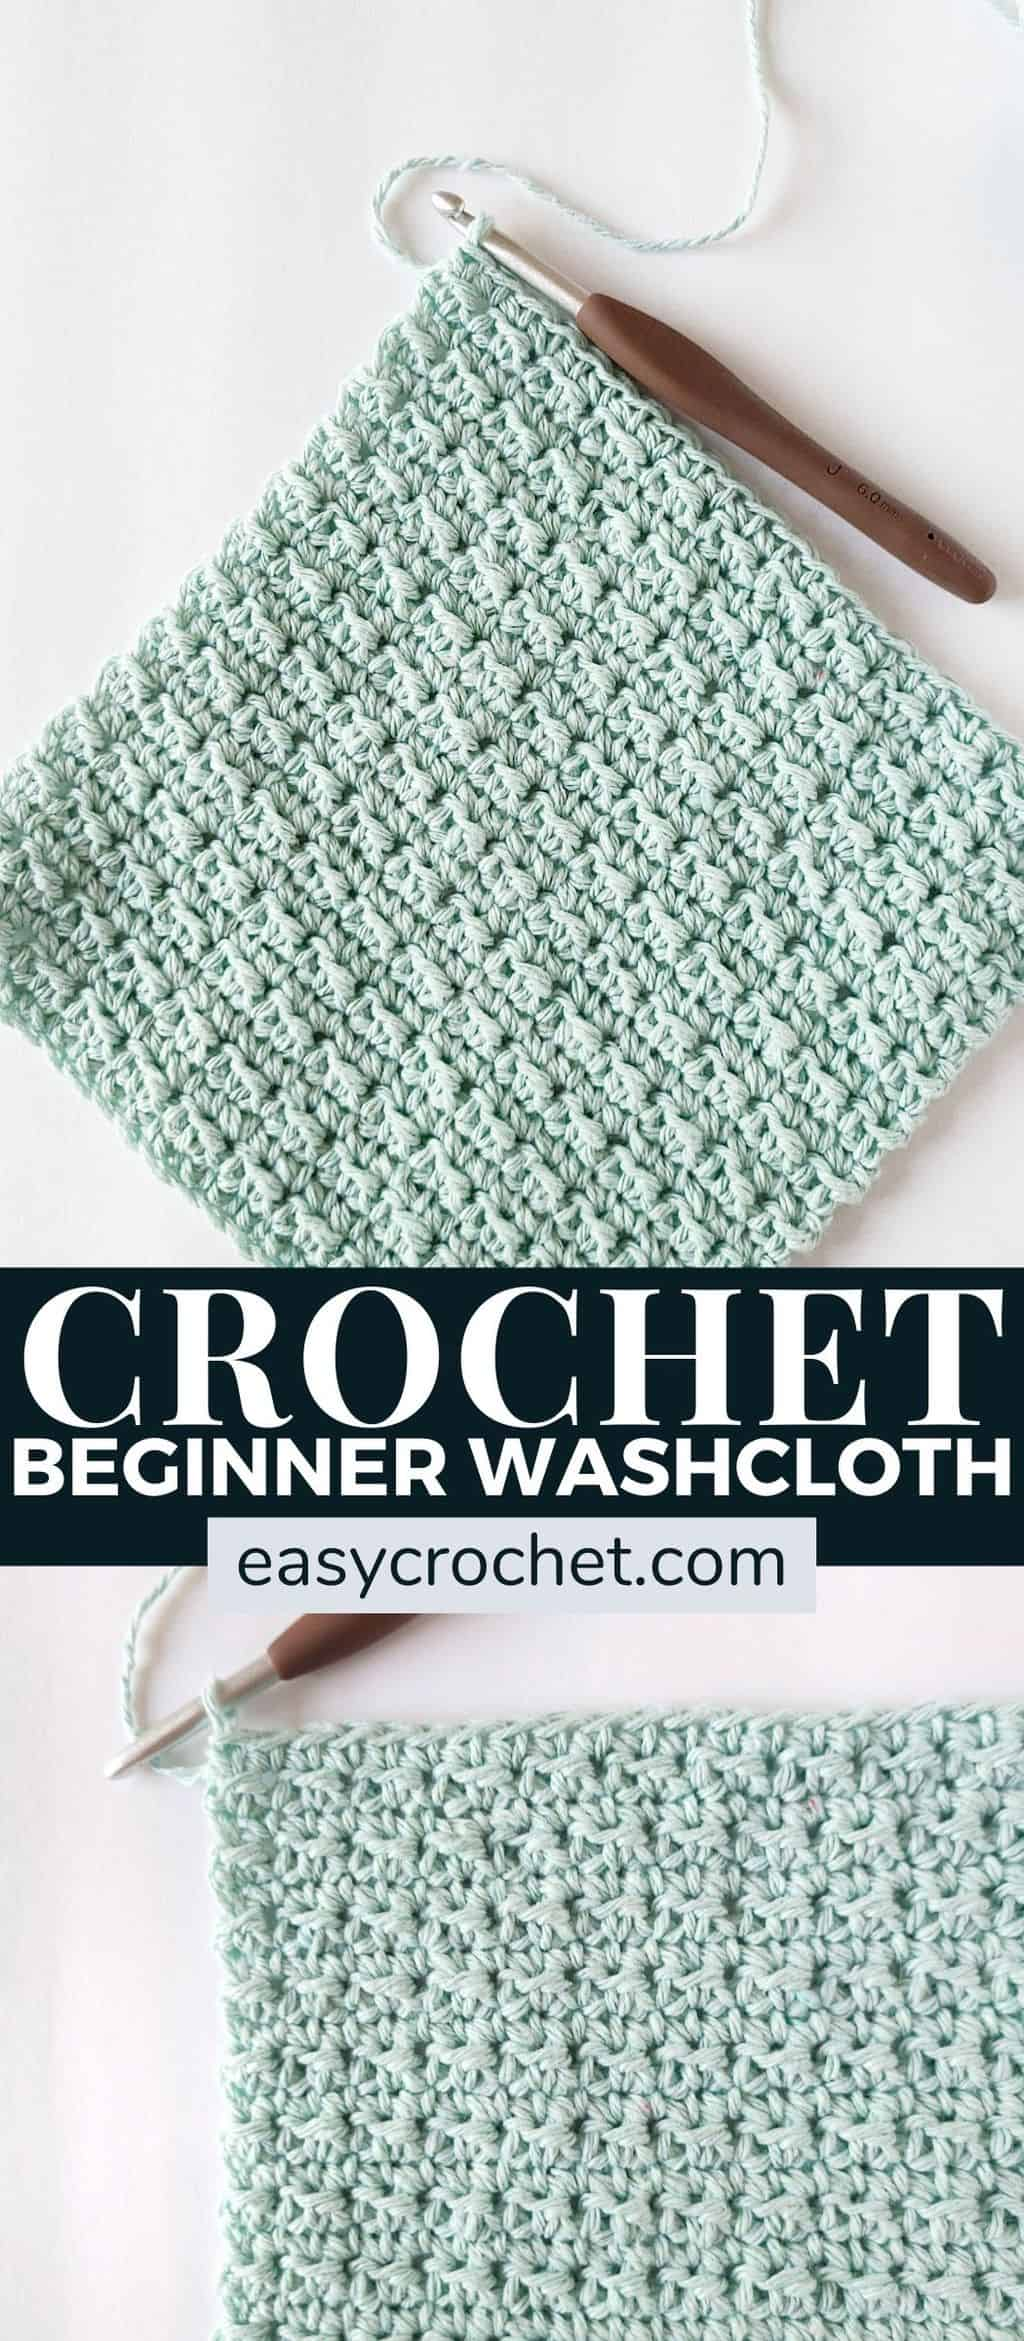 Use this free pattern to make an easy crochet washcloth! Makes a great gift and works up quickly! via @easycrochetcom